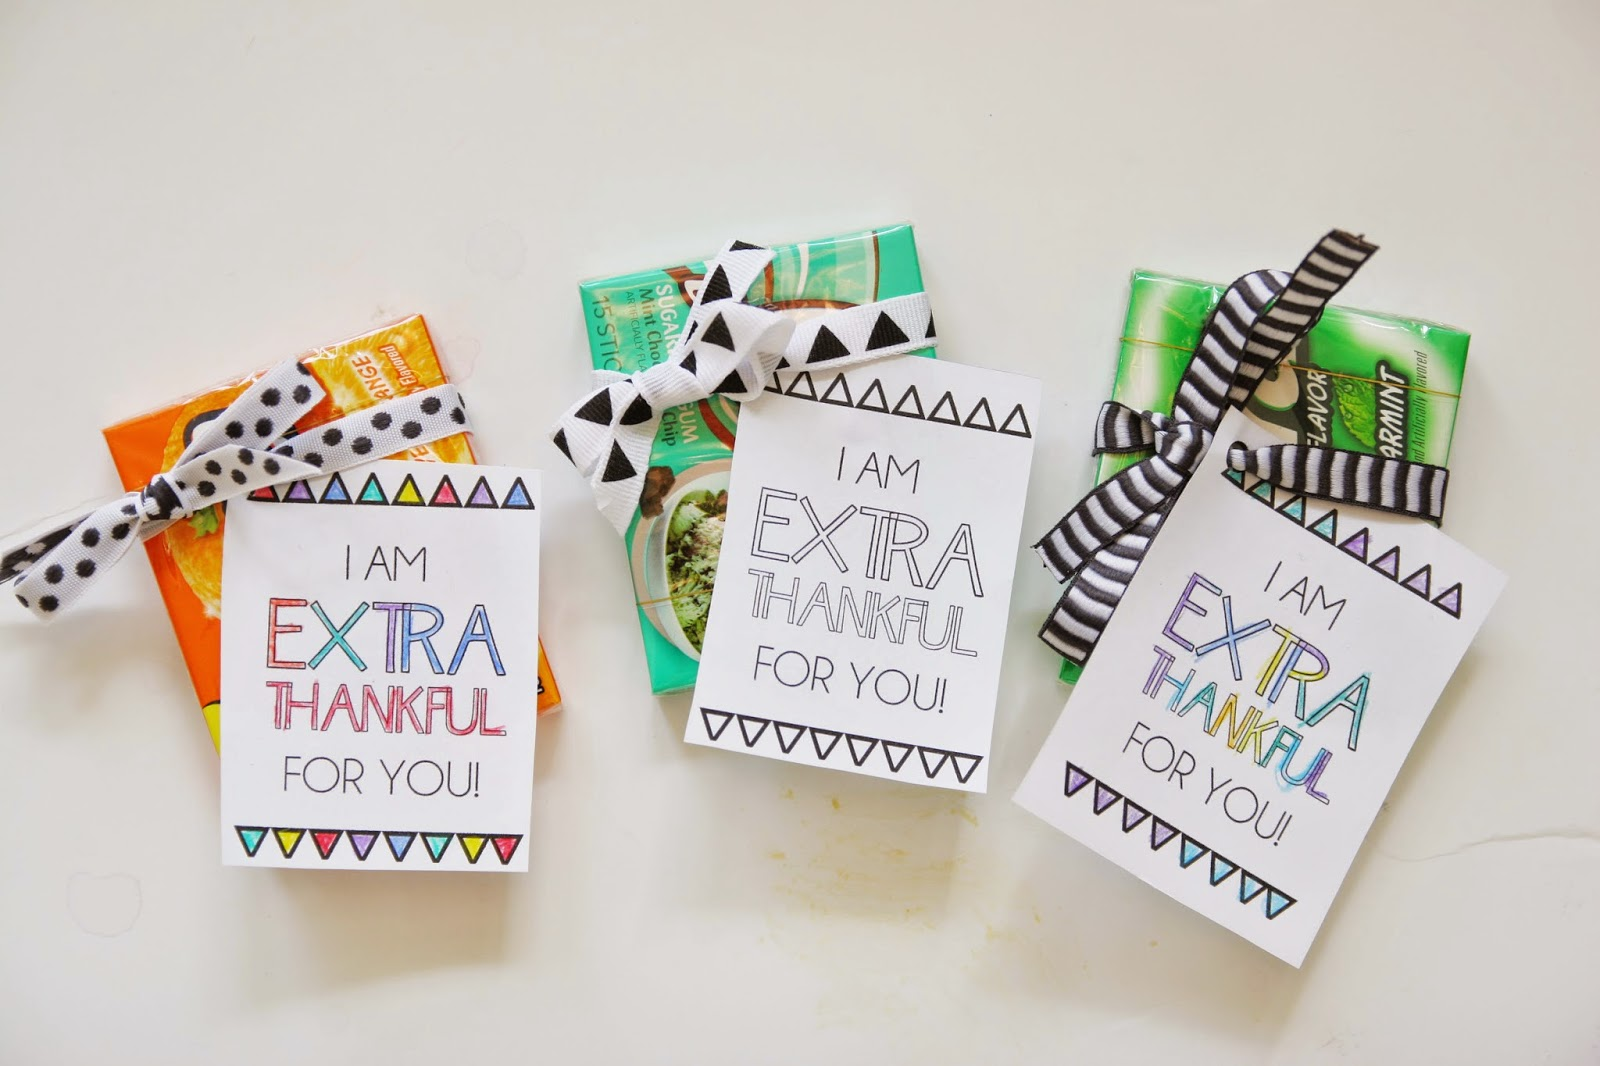 I am extra thankful for you free printable